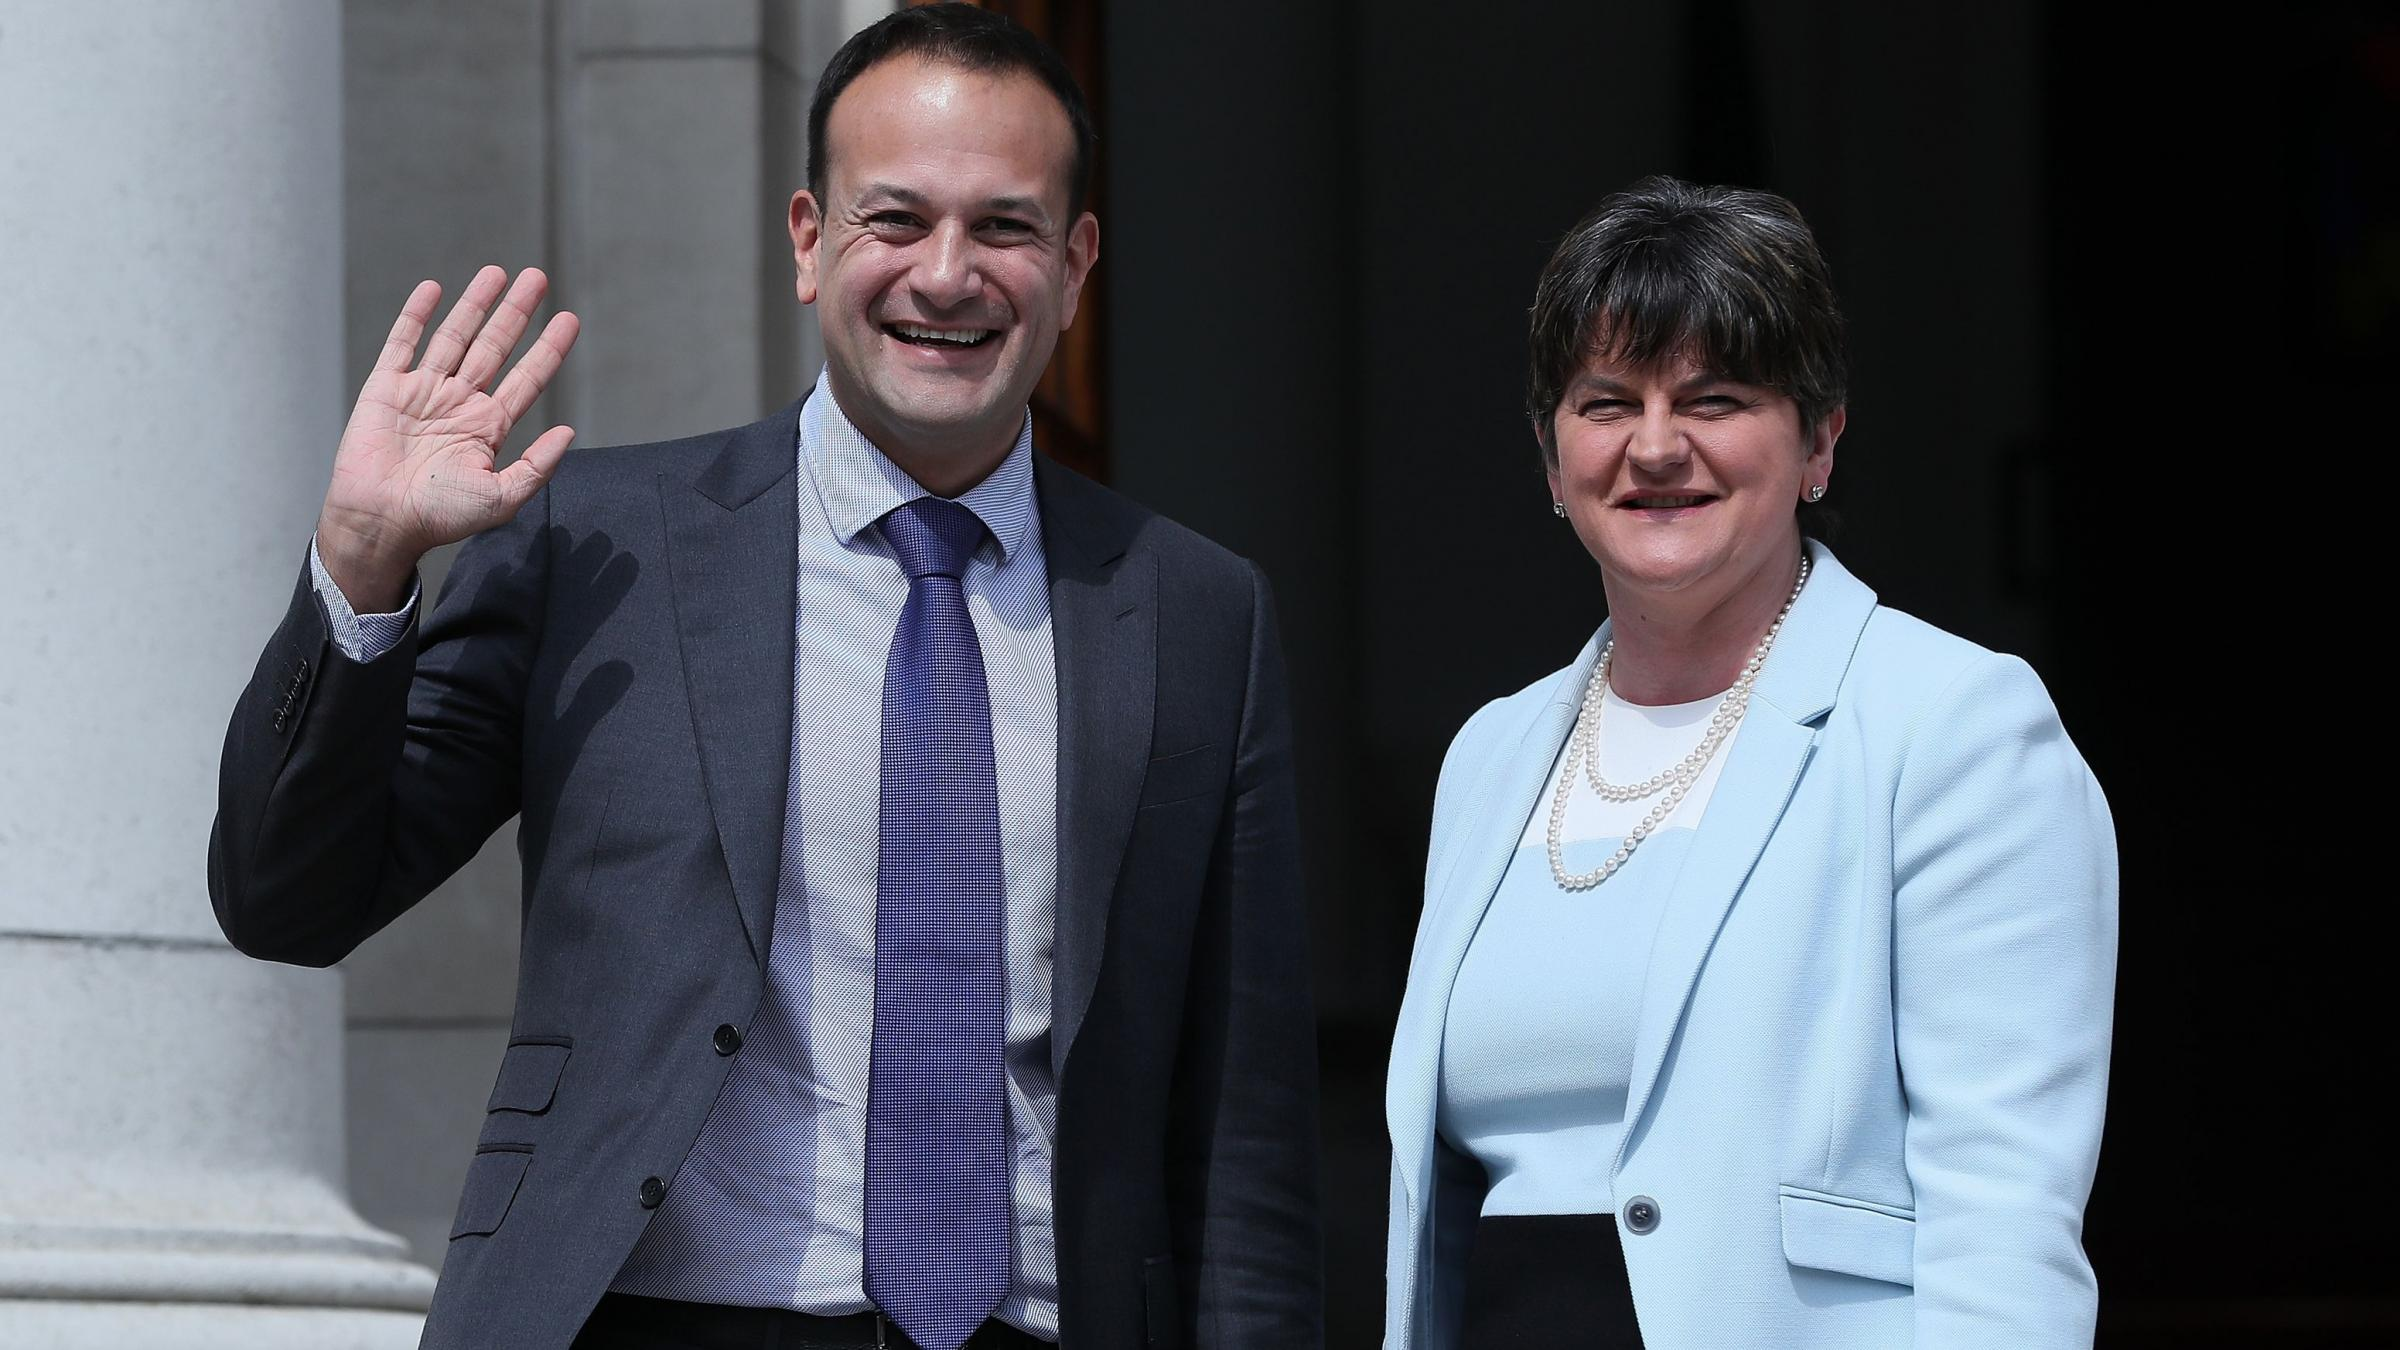 Proposed DUP deal would not undermine Good Friday Agreement, insists May